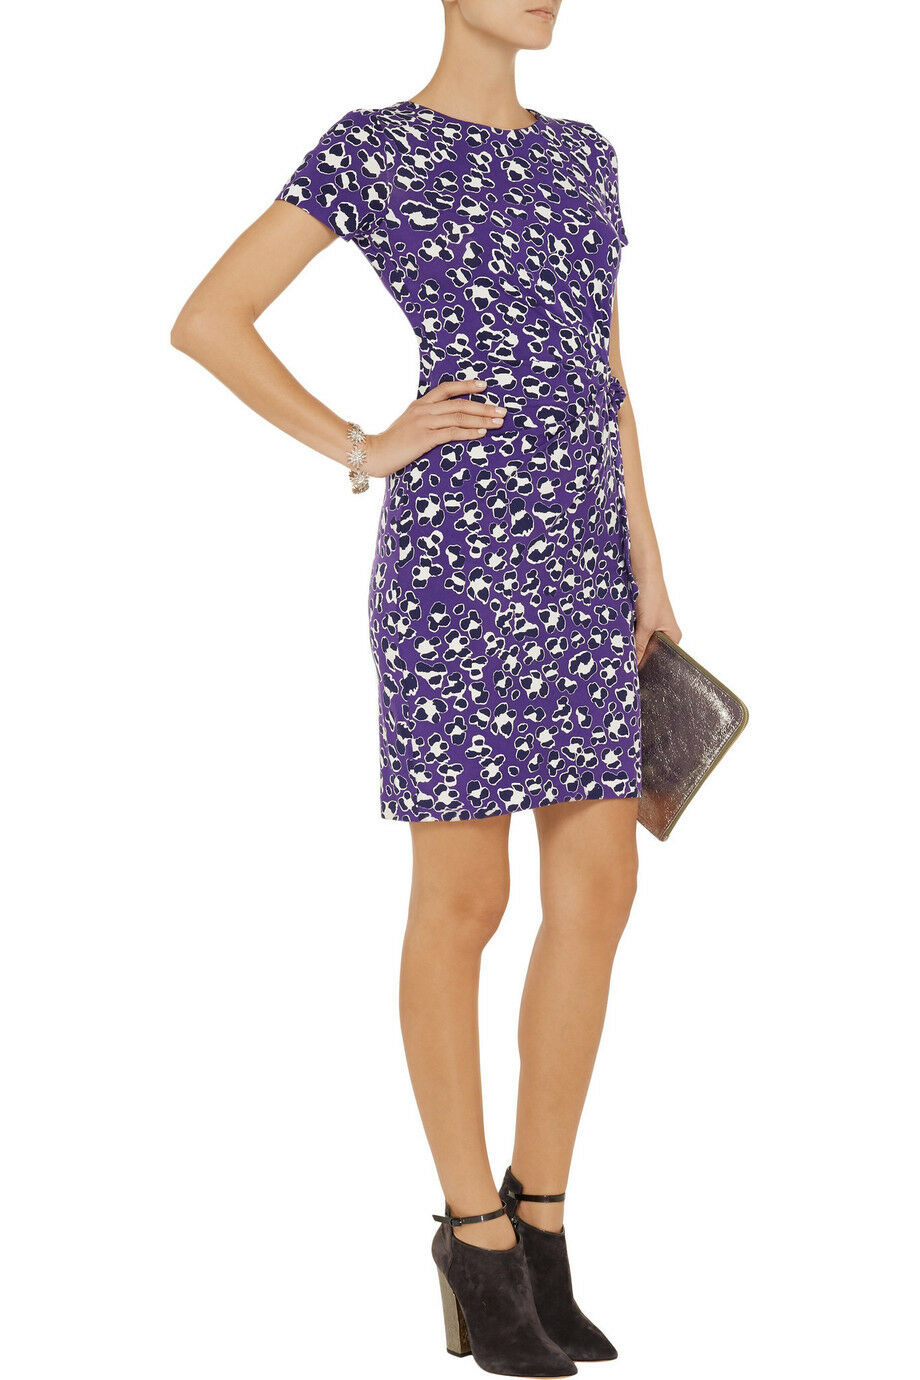 Diane Von Furstenberg ZOE' spotted cat cat cat PRINT SILK JERSEY SHEATH  DRESS 6 94e10c